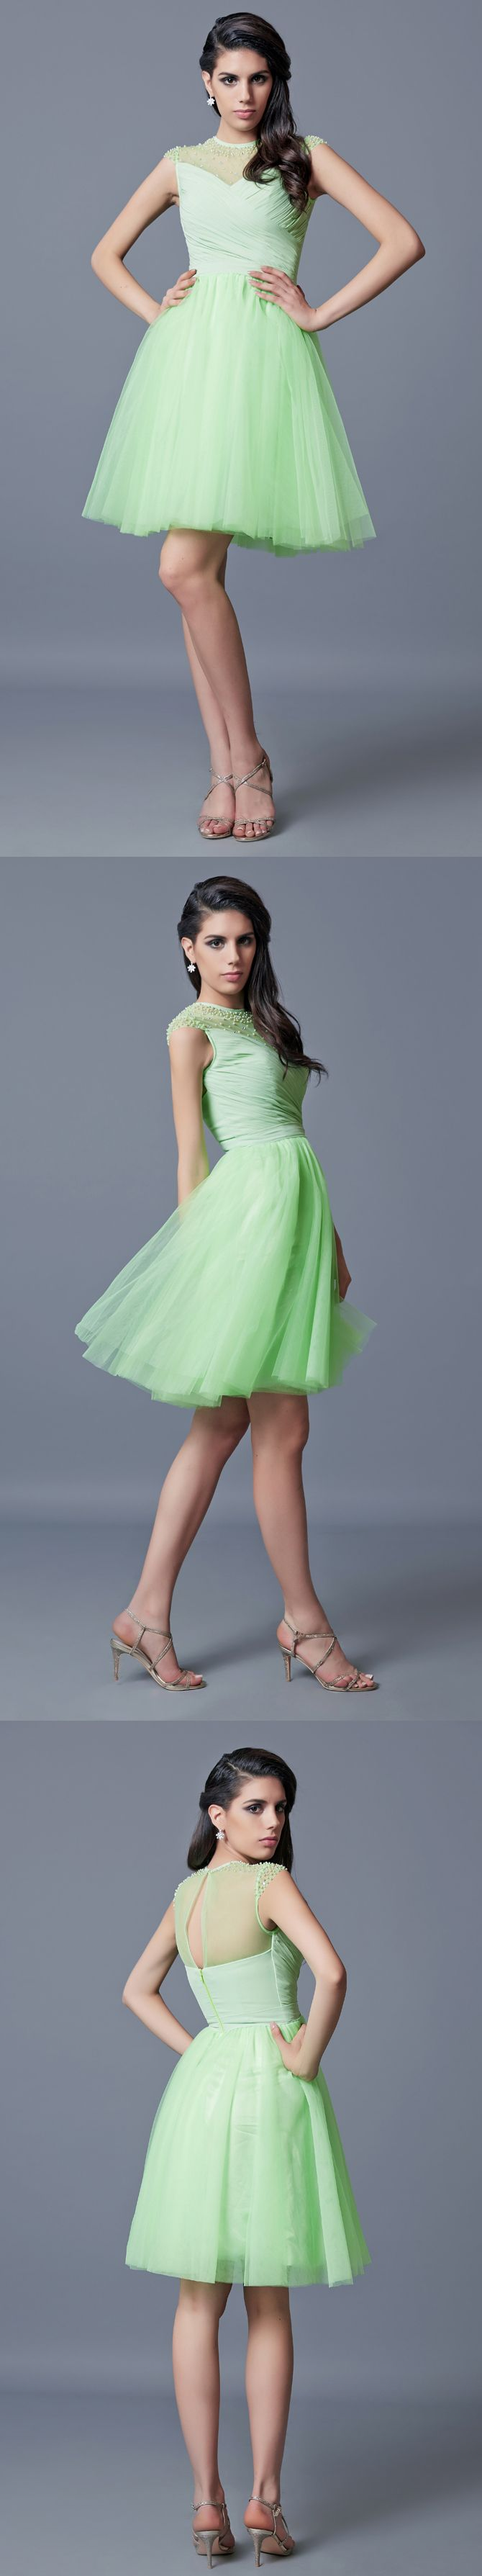 Cap sleeve aline short tulle dress with beading and pleats